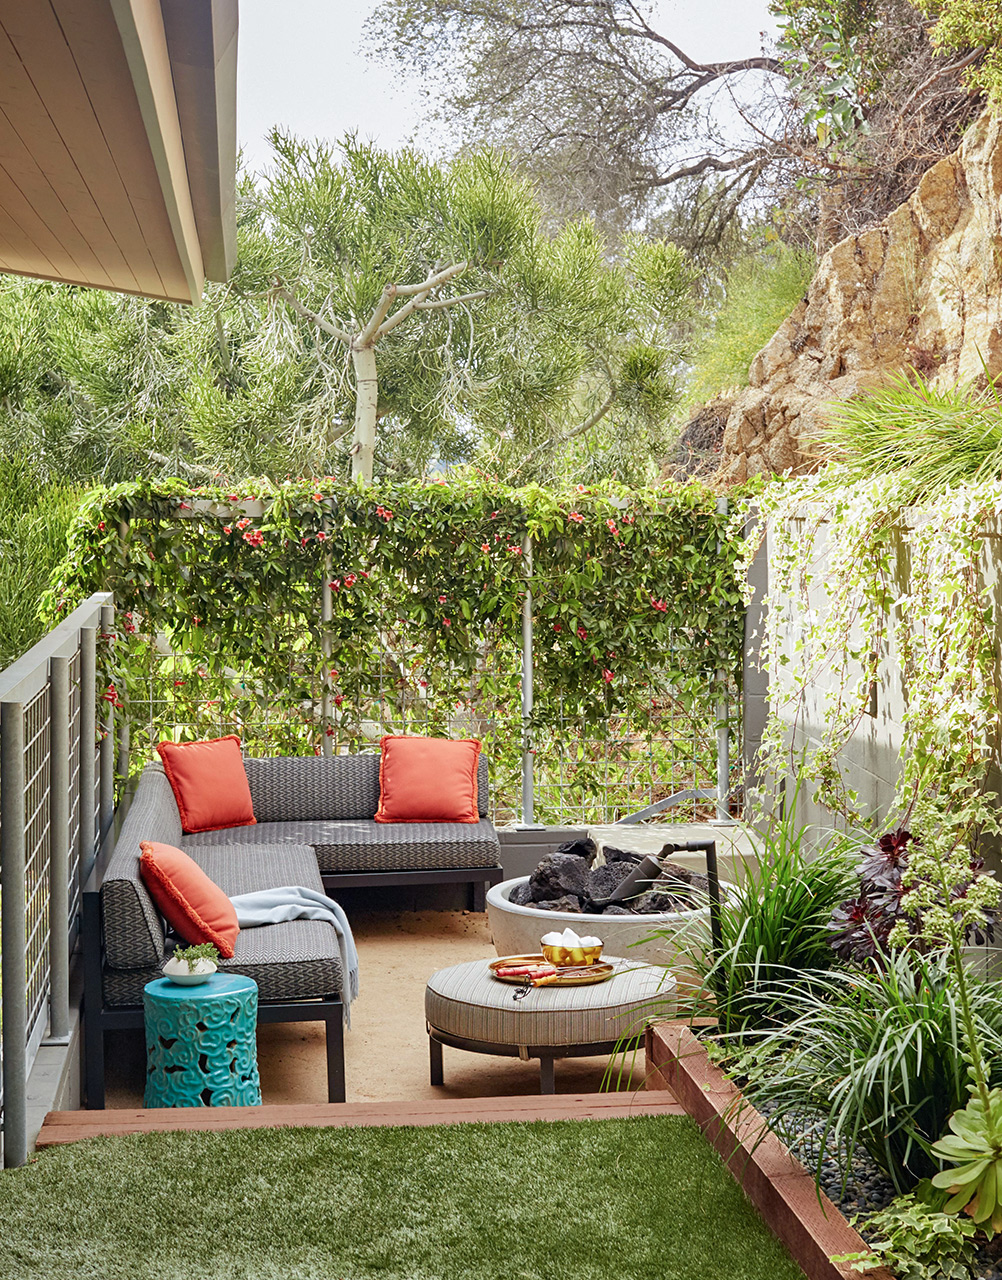 10 Budget-Friendly Backyard Ideas to Create the Ultimate Outdoor